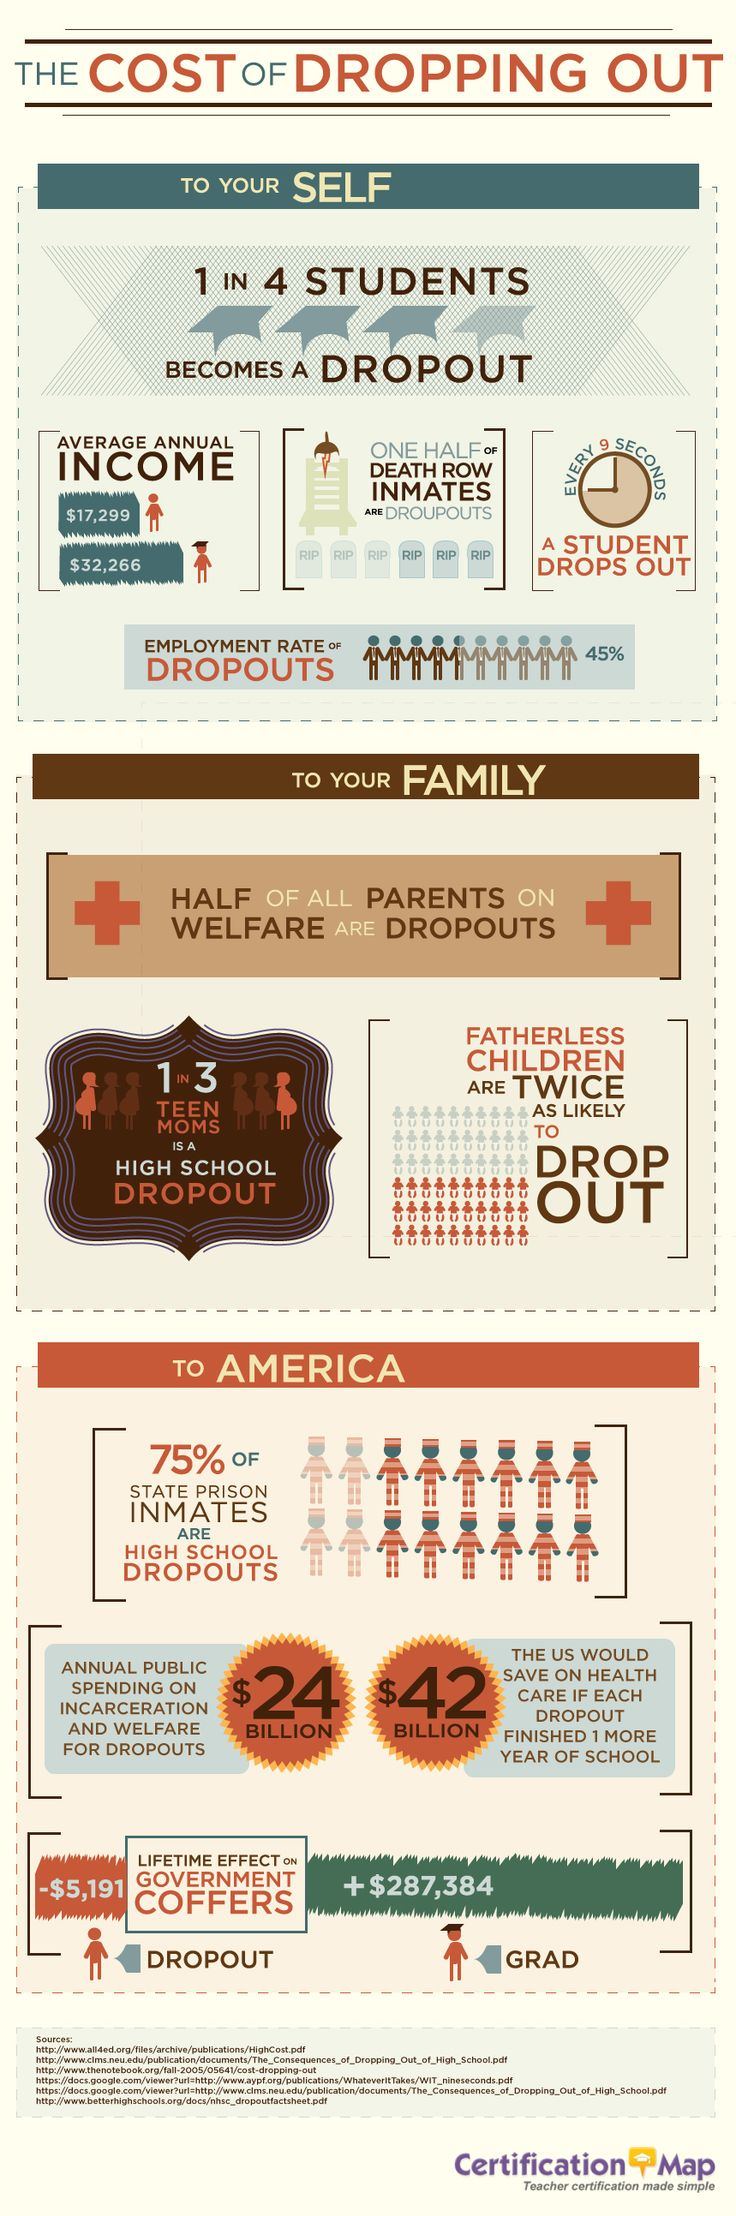 The Cost of Dropping Out #infographic